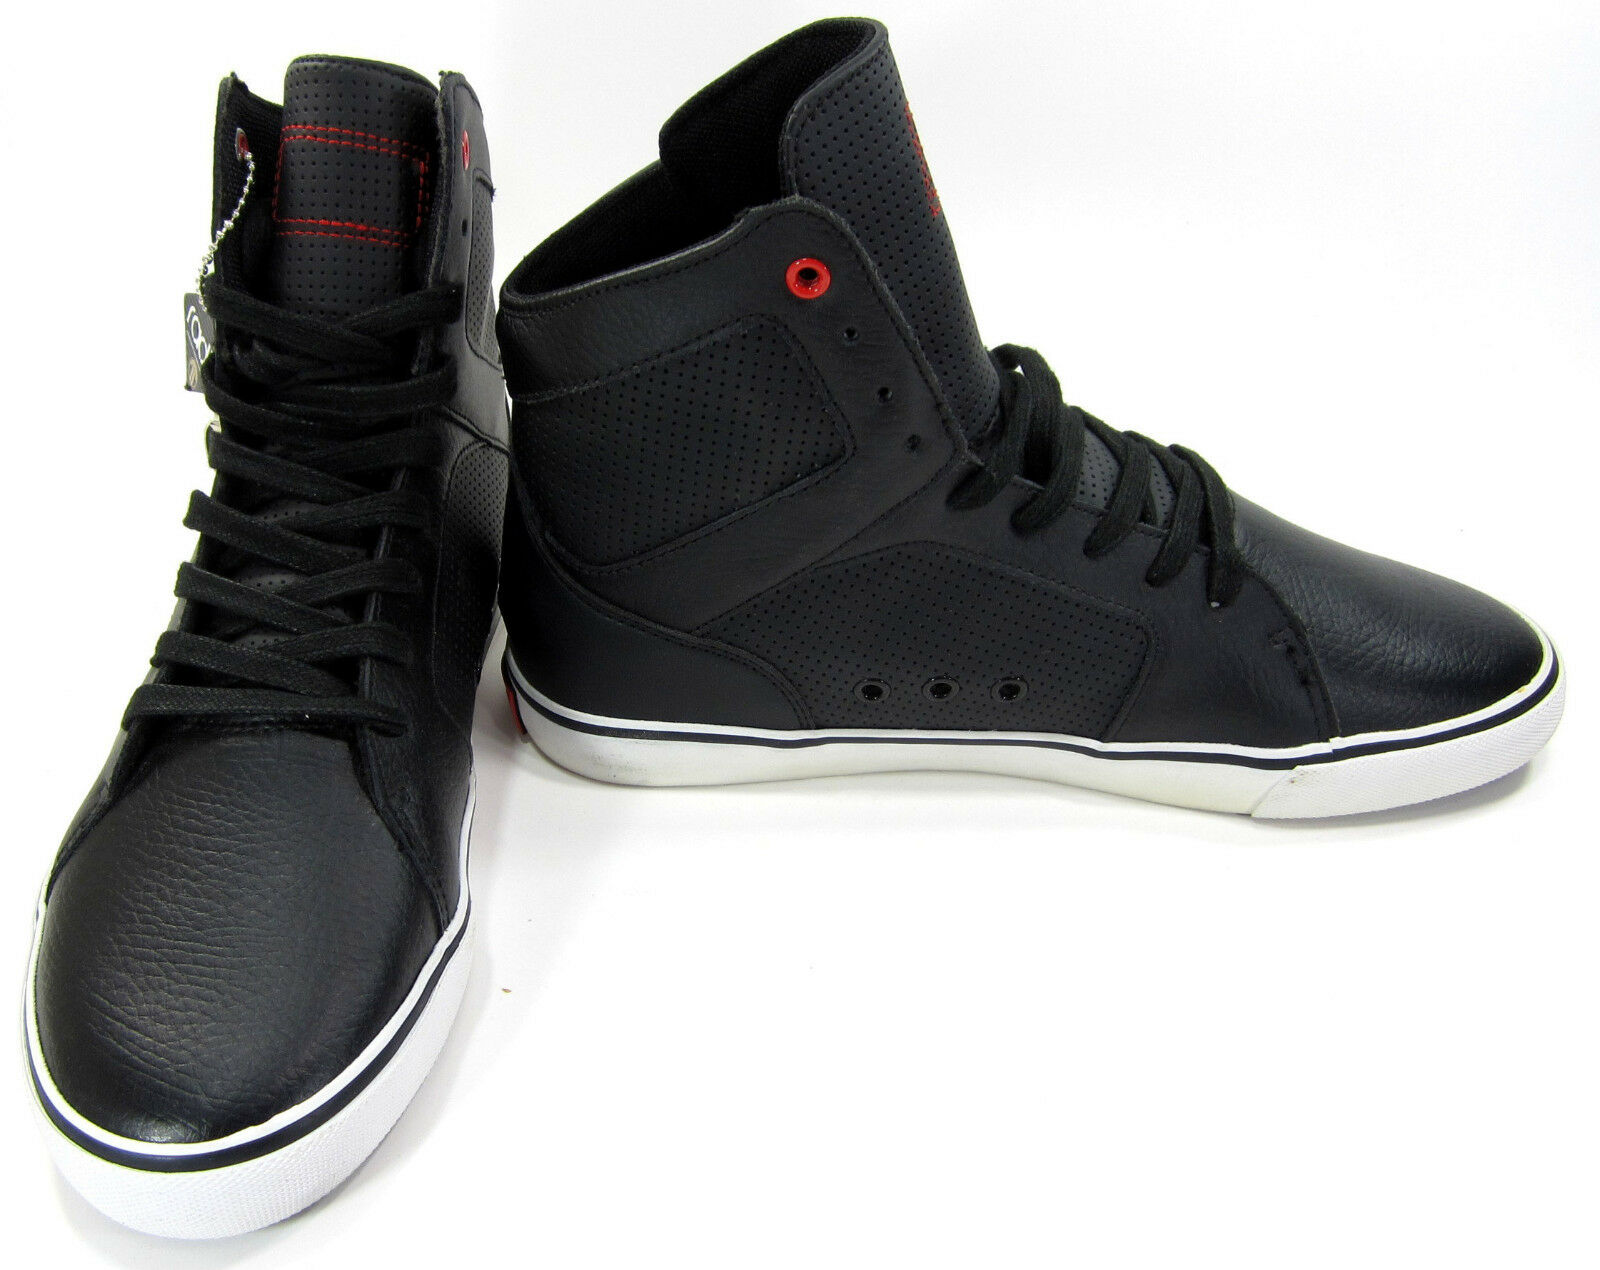 71c6d9c9d07a5 Radii Radii Radii Shoes Simple Leather Perforated Black White Sneakers Size  9.5 d366c4